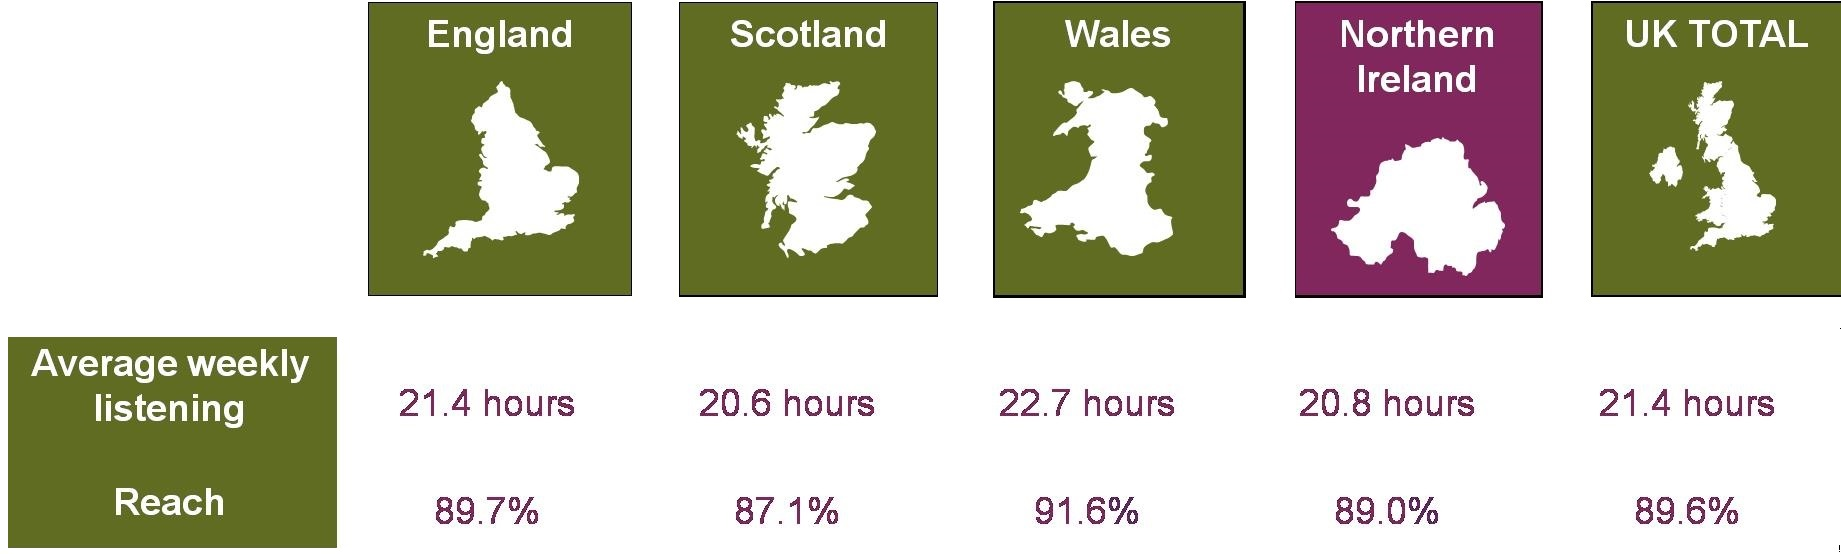 People in Northern Ireland spend 20.8 hours average listening to the radio weekly, compared to 21.4 hours across the UK